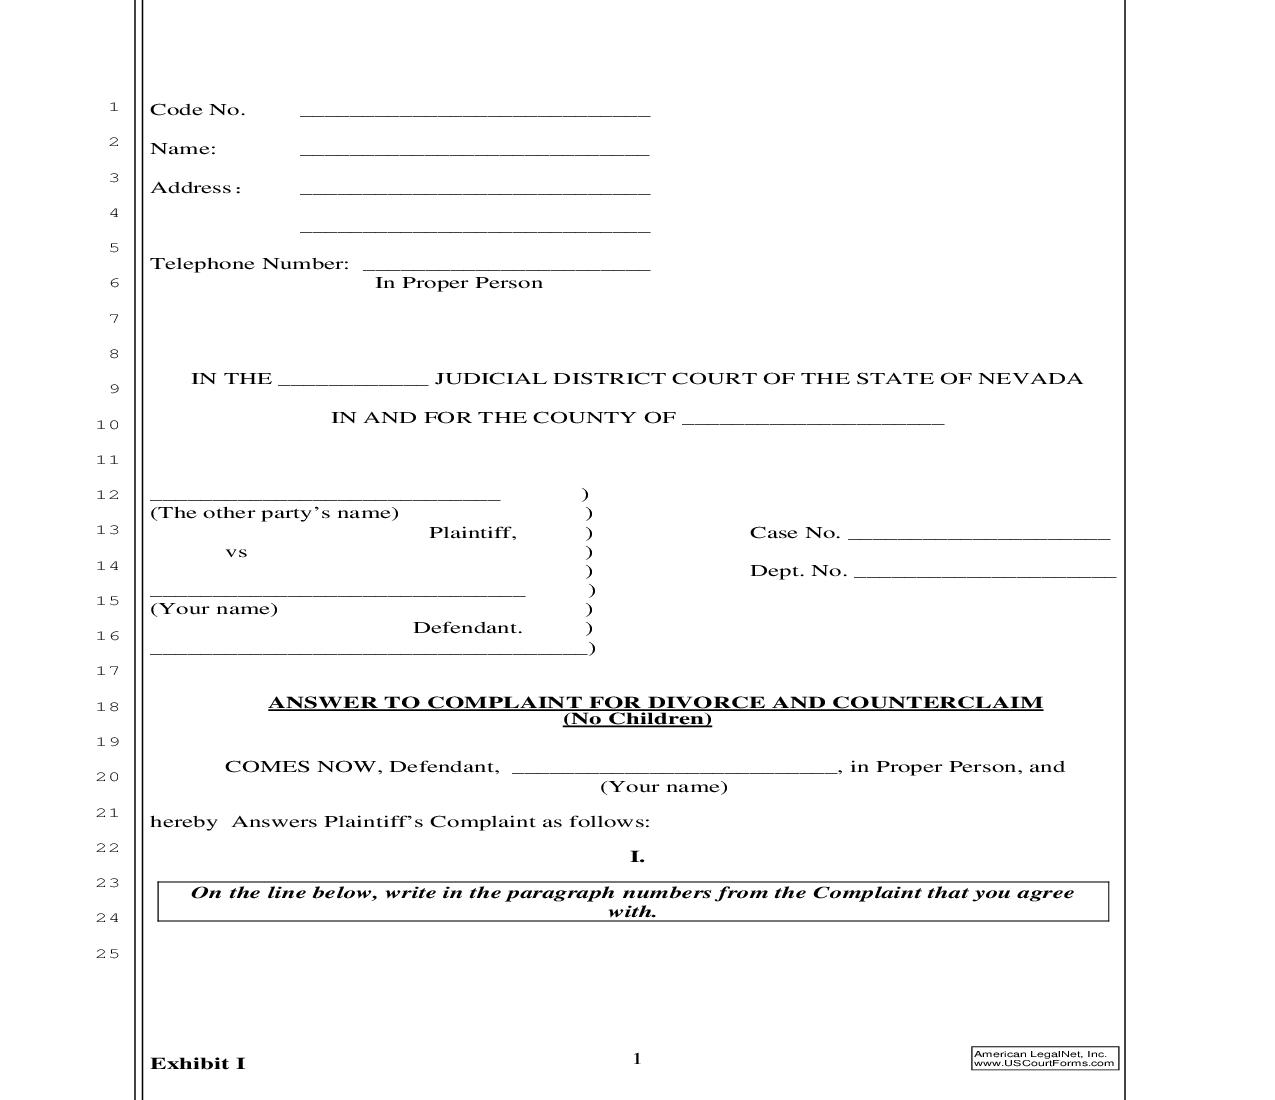 Answer To Complaint For Divorce And Counterclaim (No Children) | Pdf Fpdf Doc Docx | Nevada